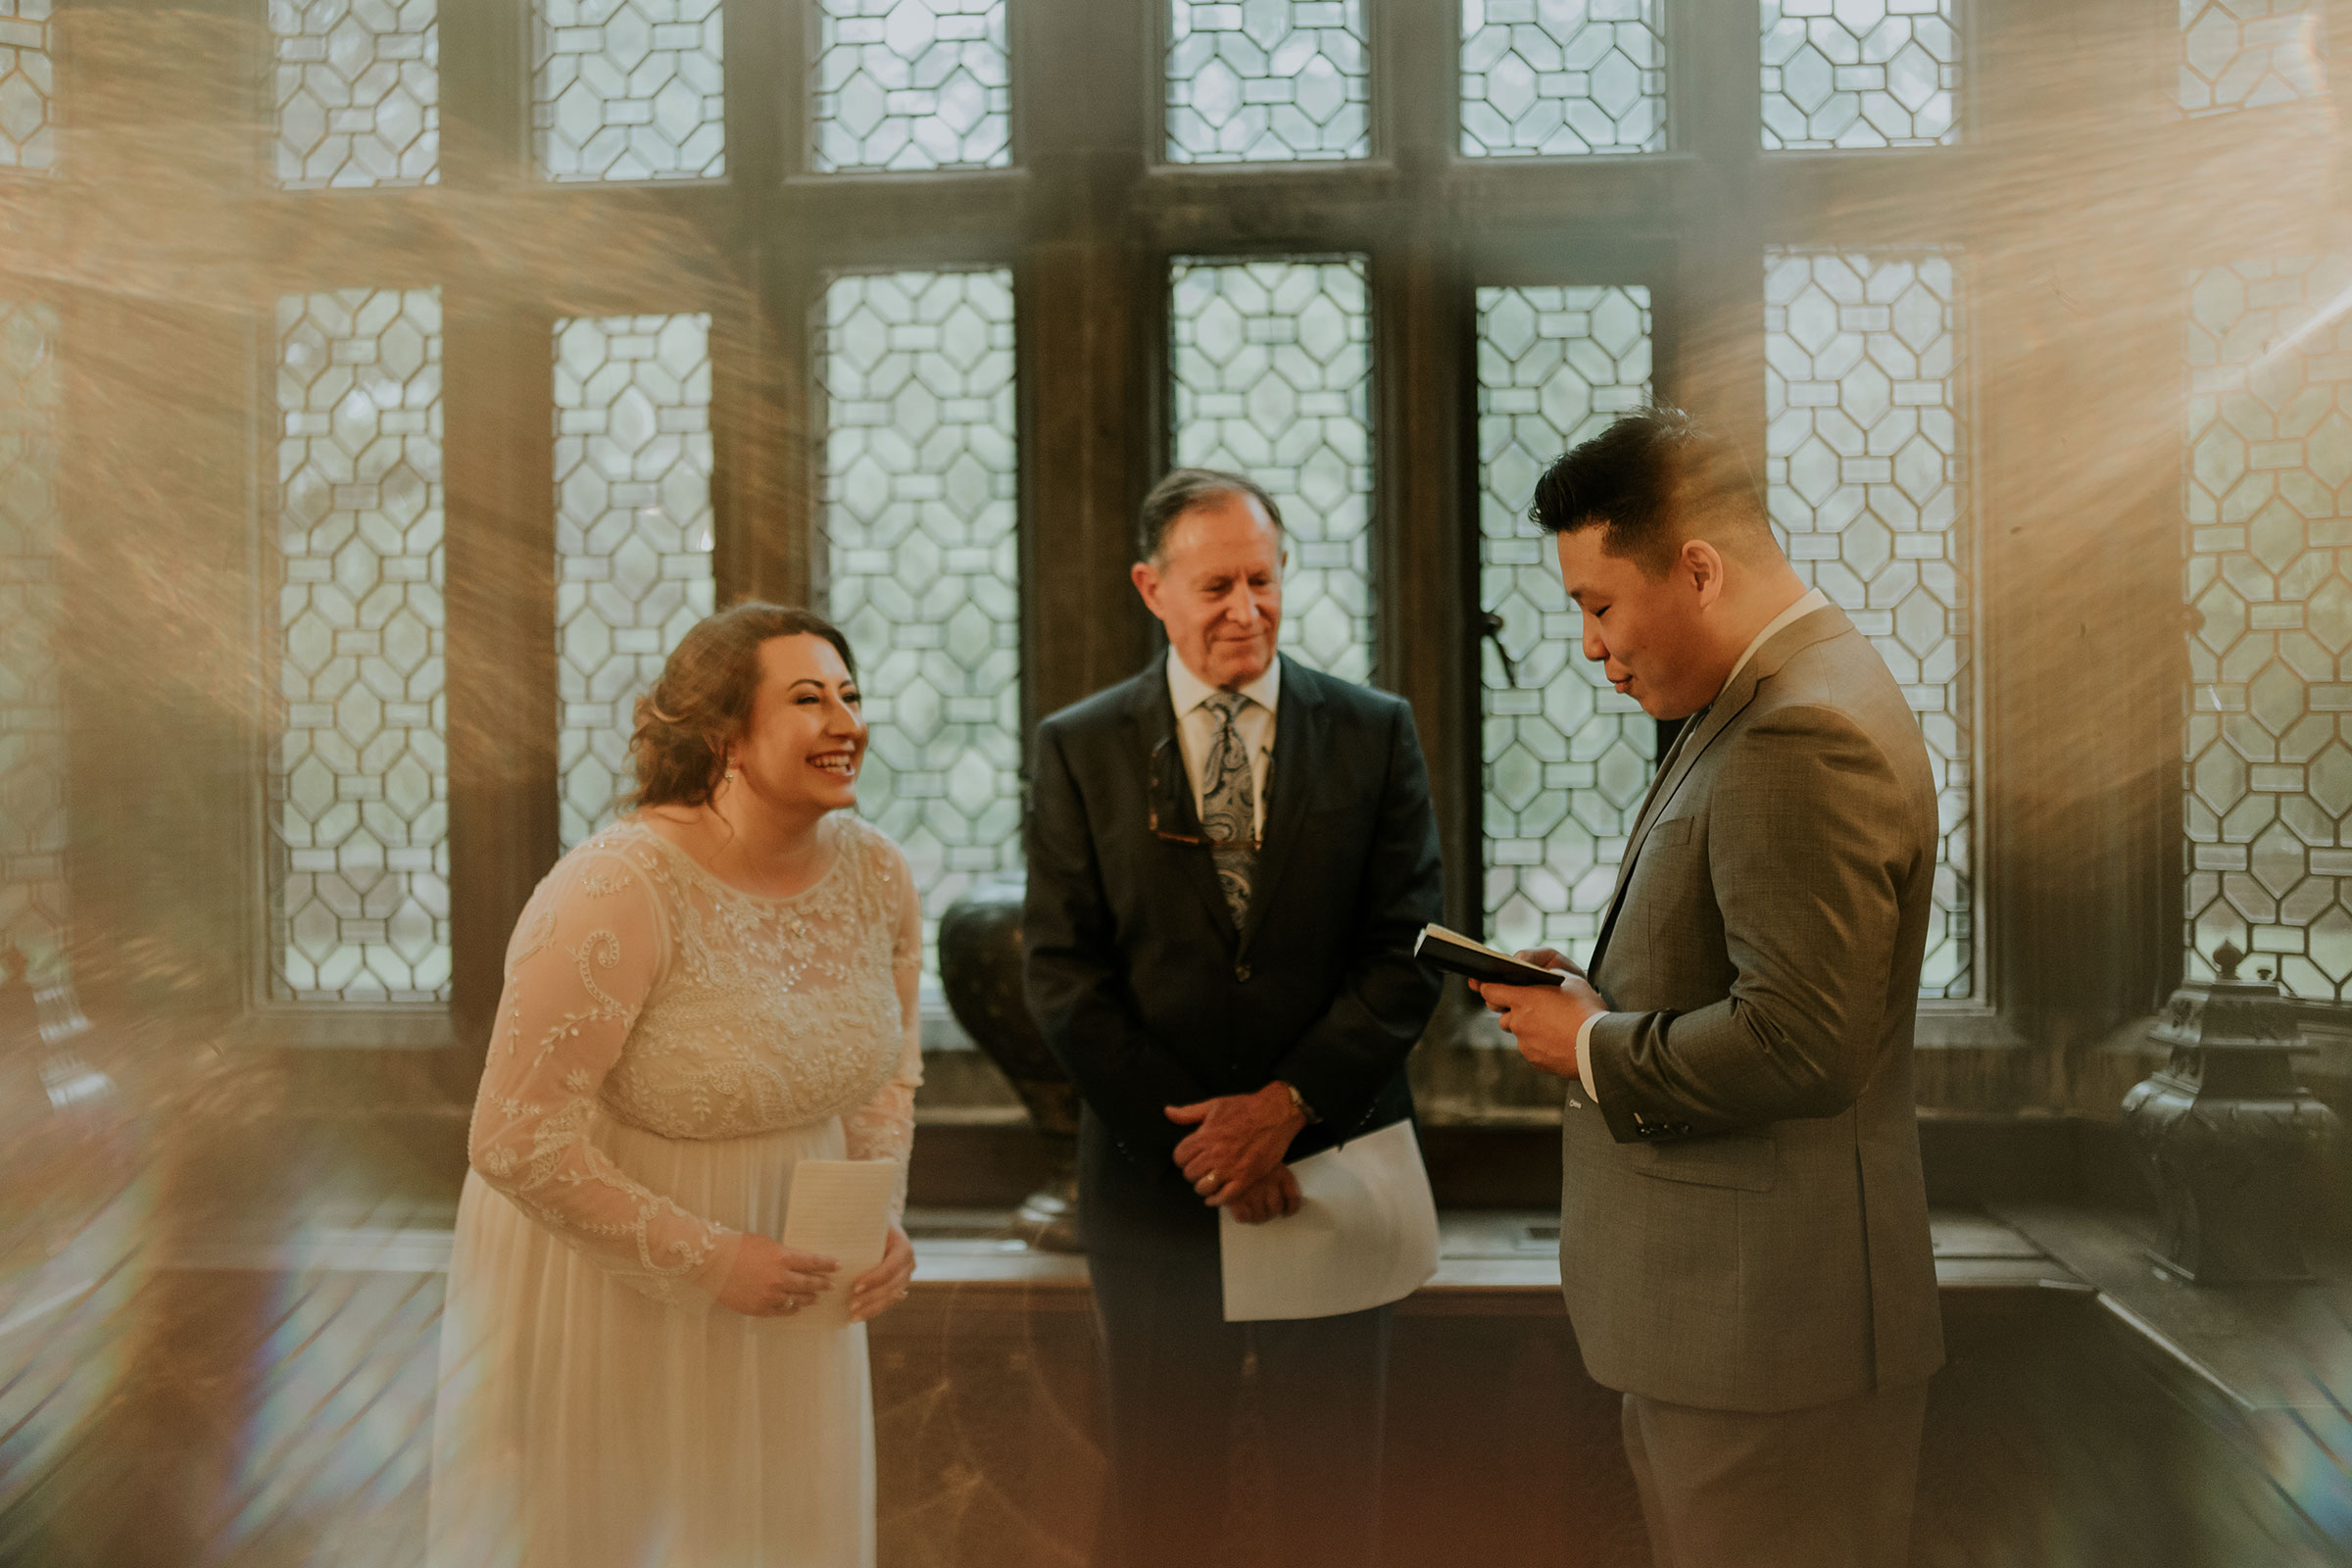 bride-laughing-during-groom-vows-elopement-salisbury-house-desmoines-iowa-raelyn-ramey-photography.jpg